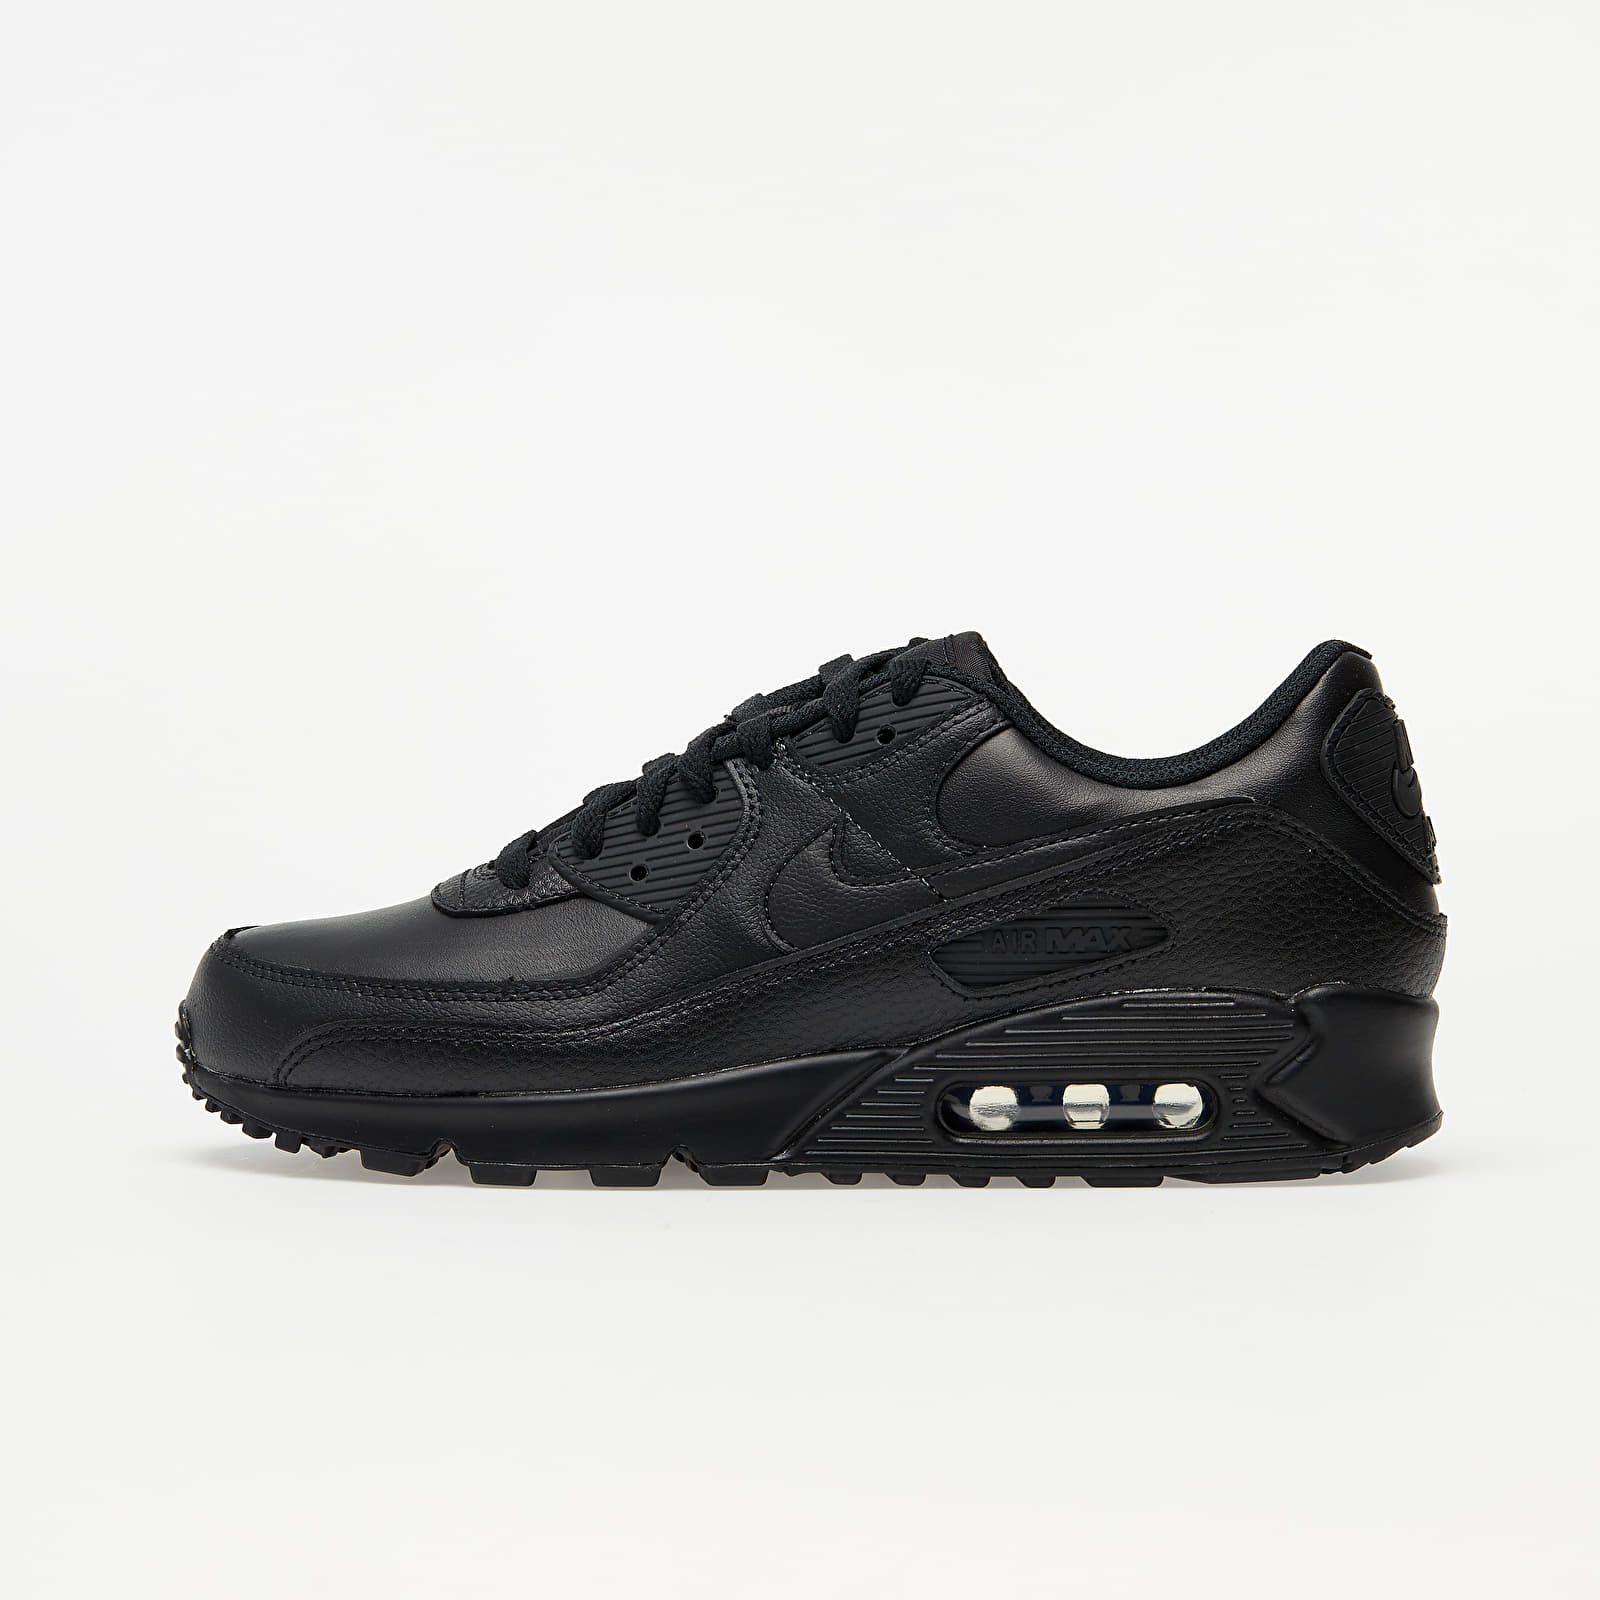 Nike Air Max 90 Leather Black/ Black-Black EUR 40.5